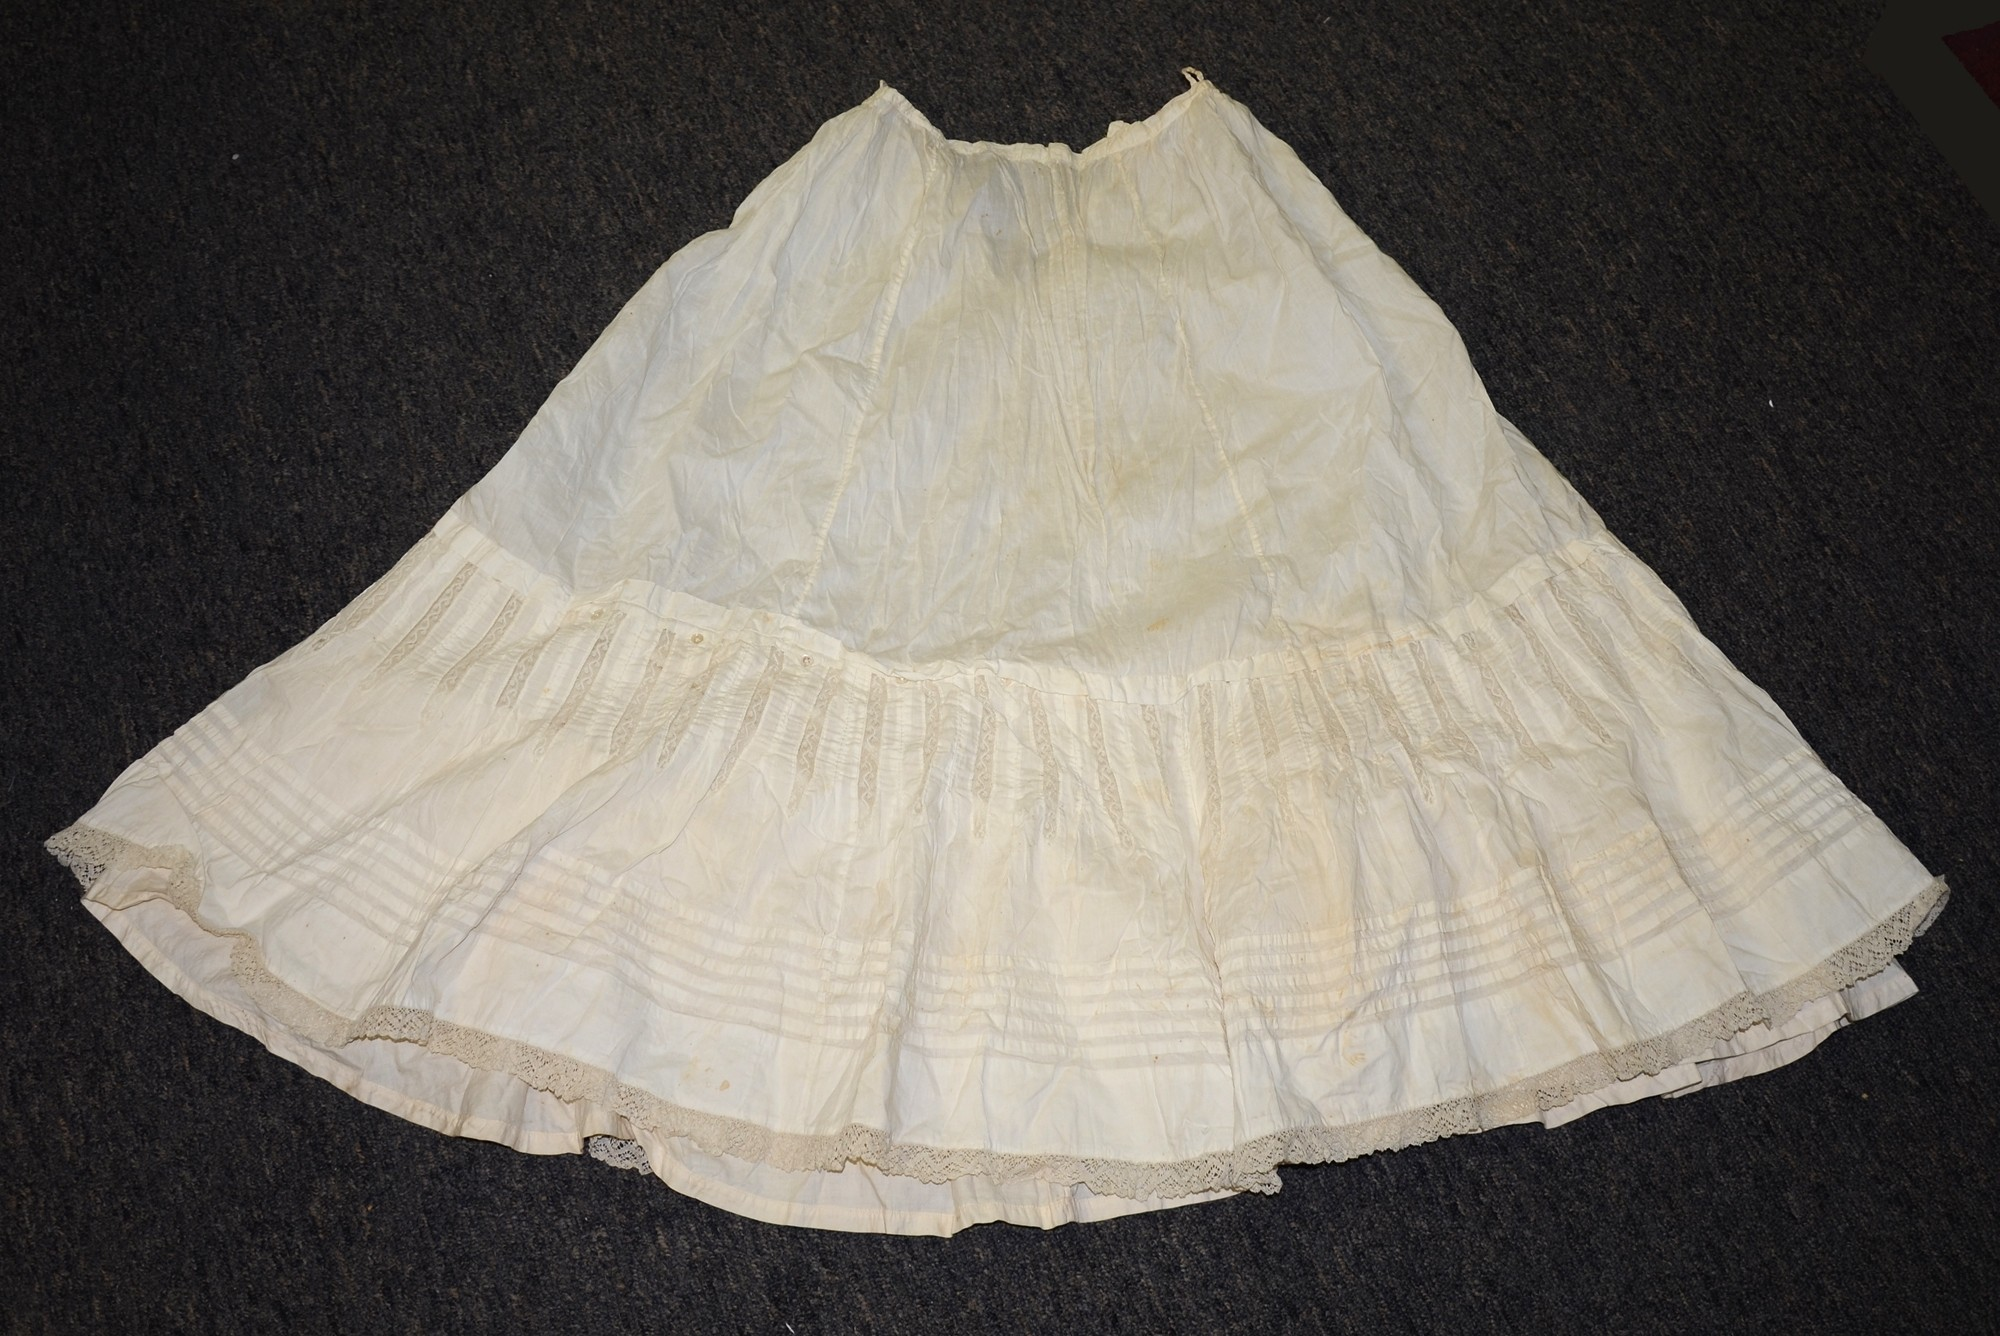 WHITE COTTON VICTORIAN PETTICOAT